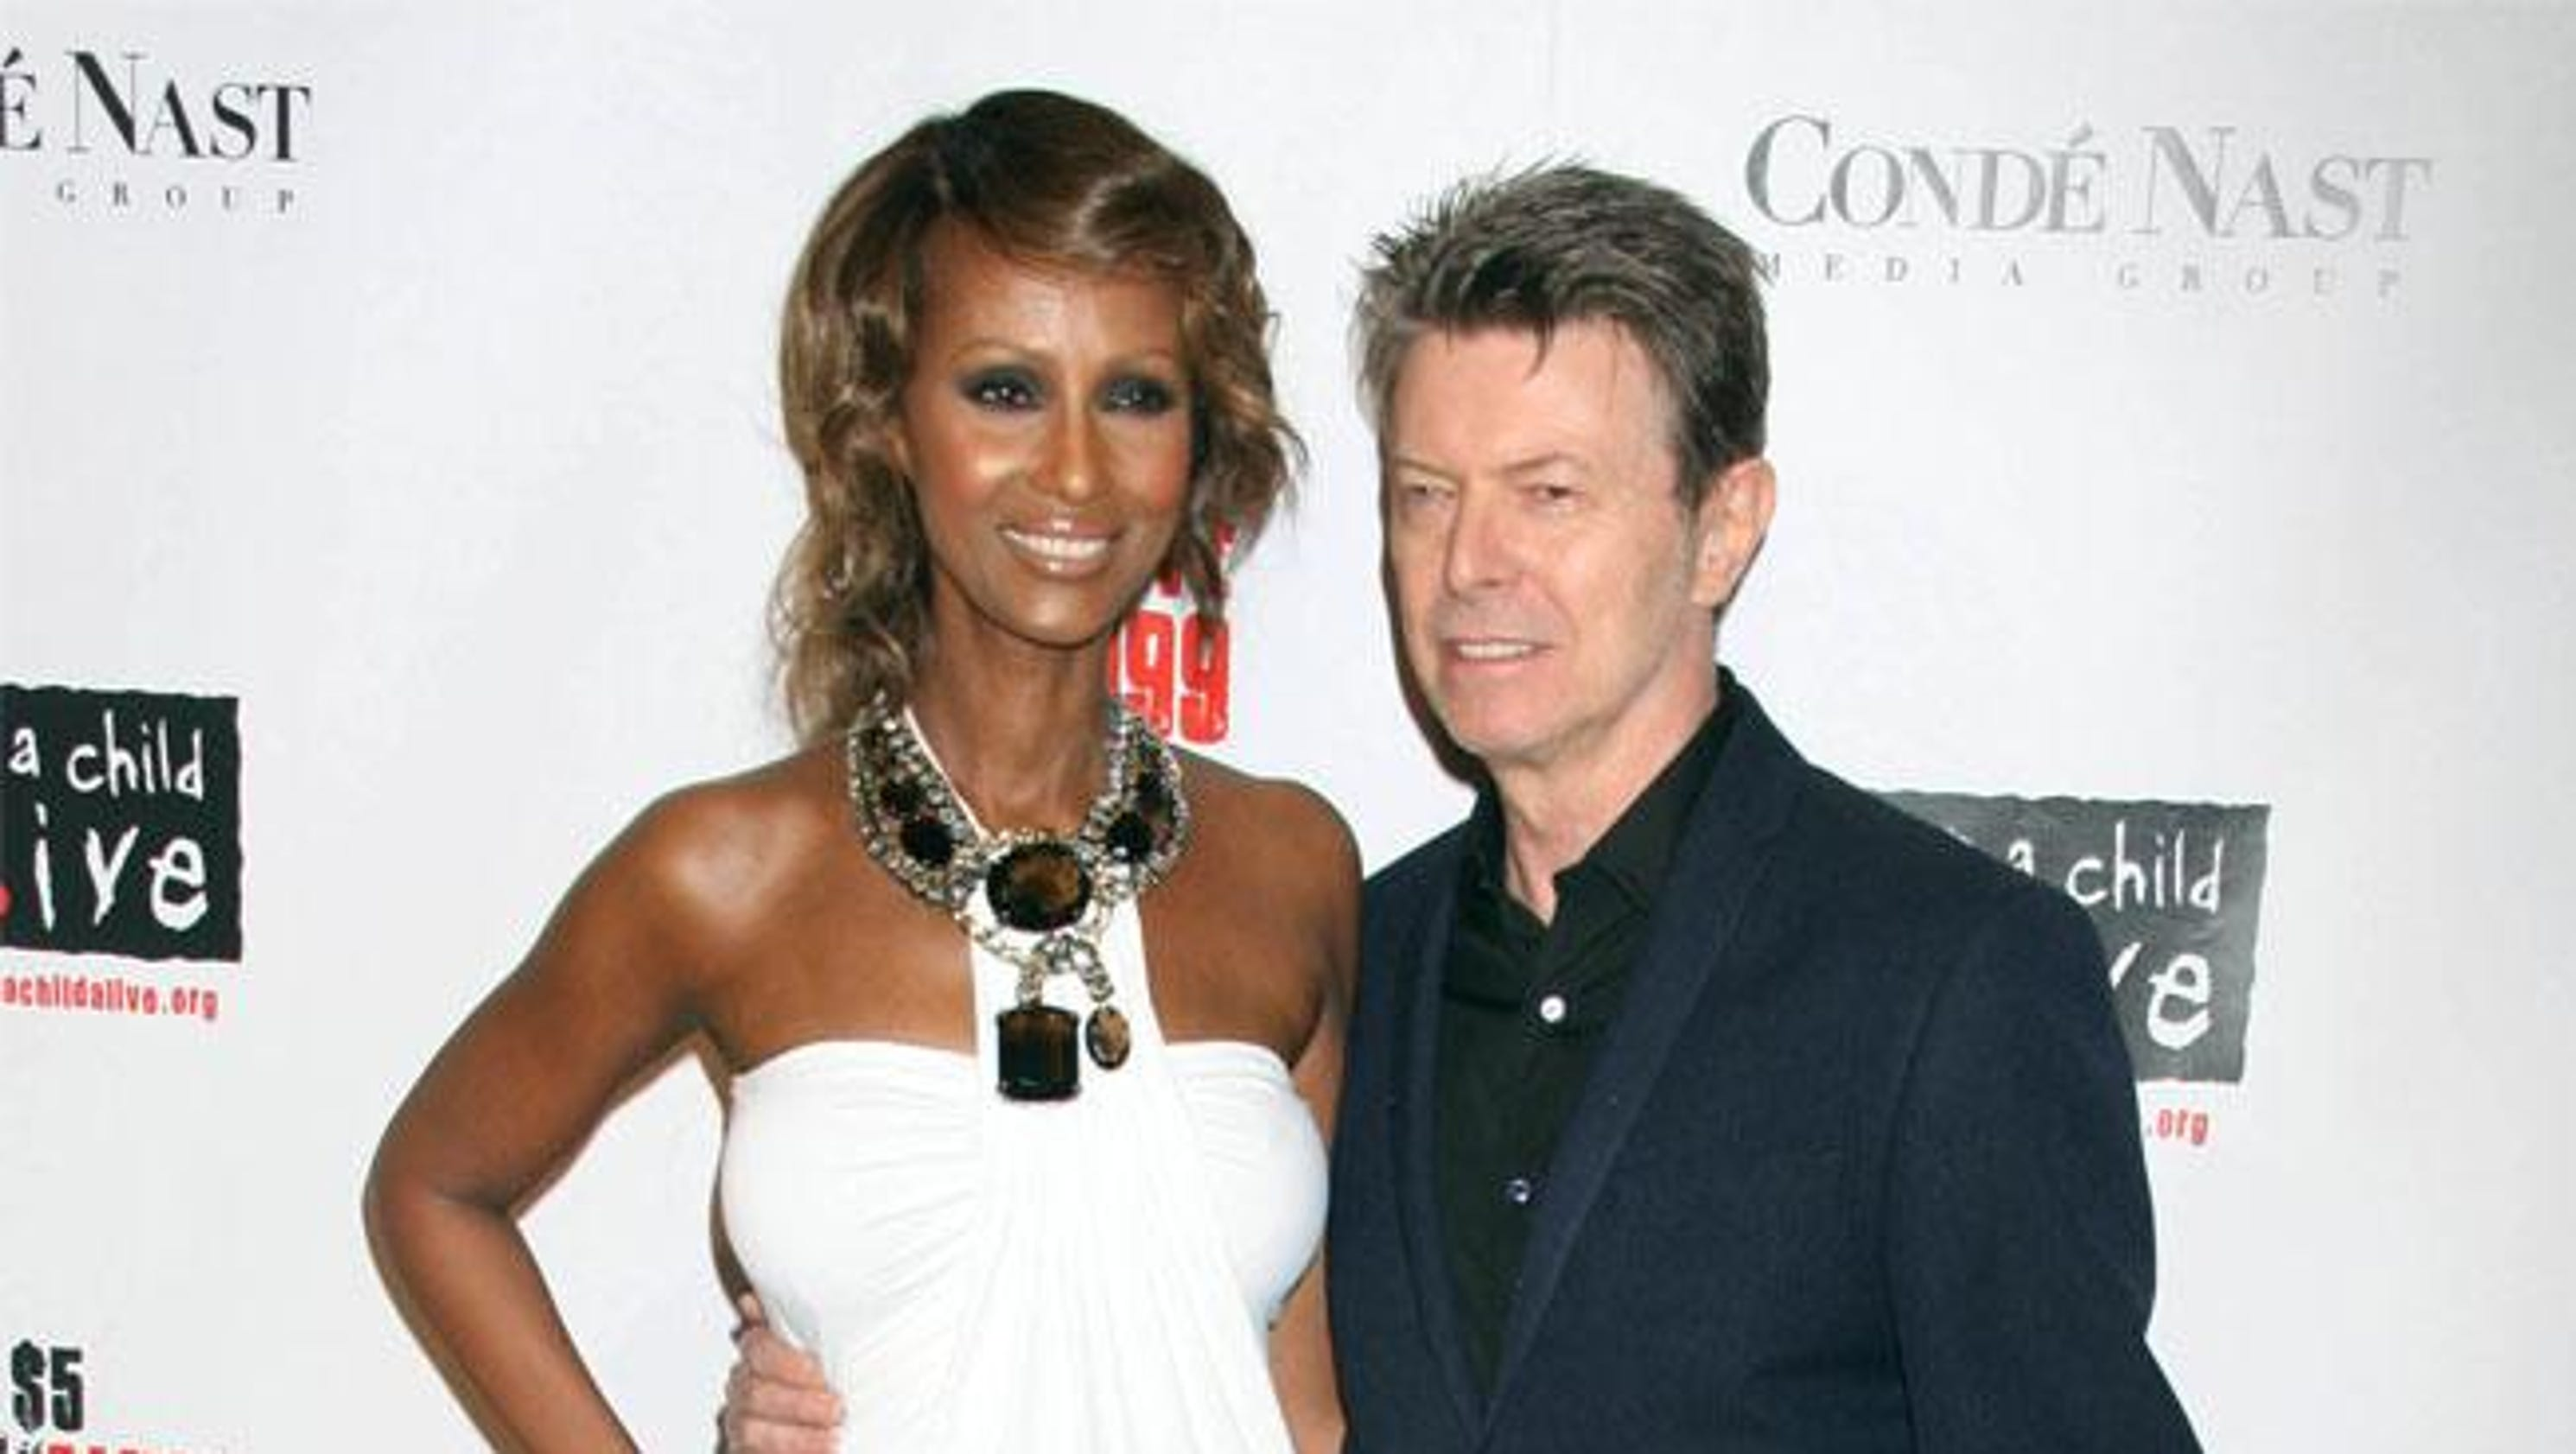 David Bowie was lonely before falling in love with Iman